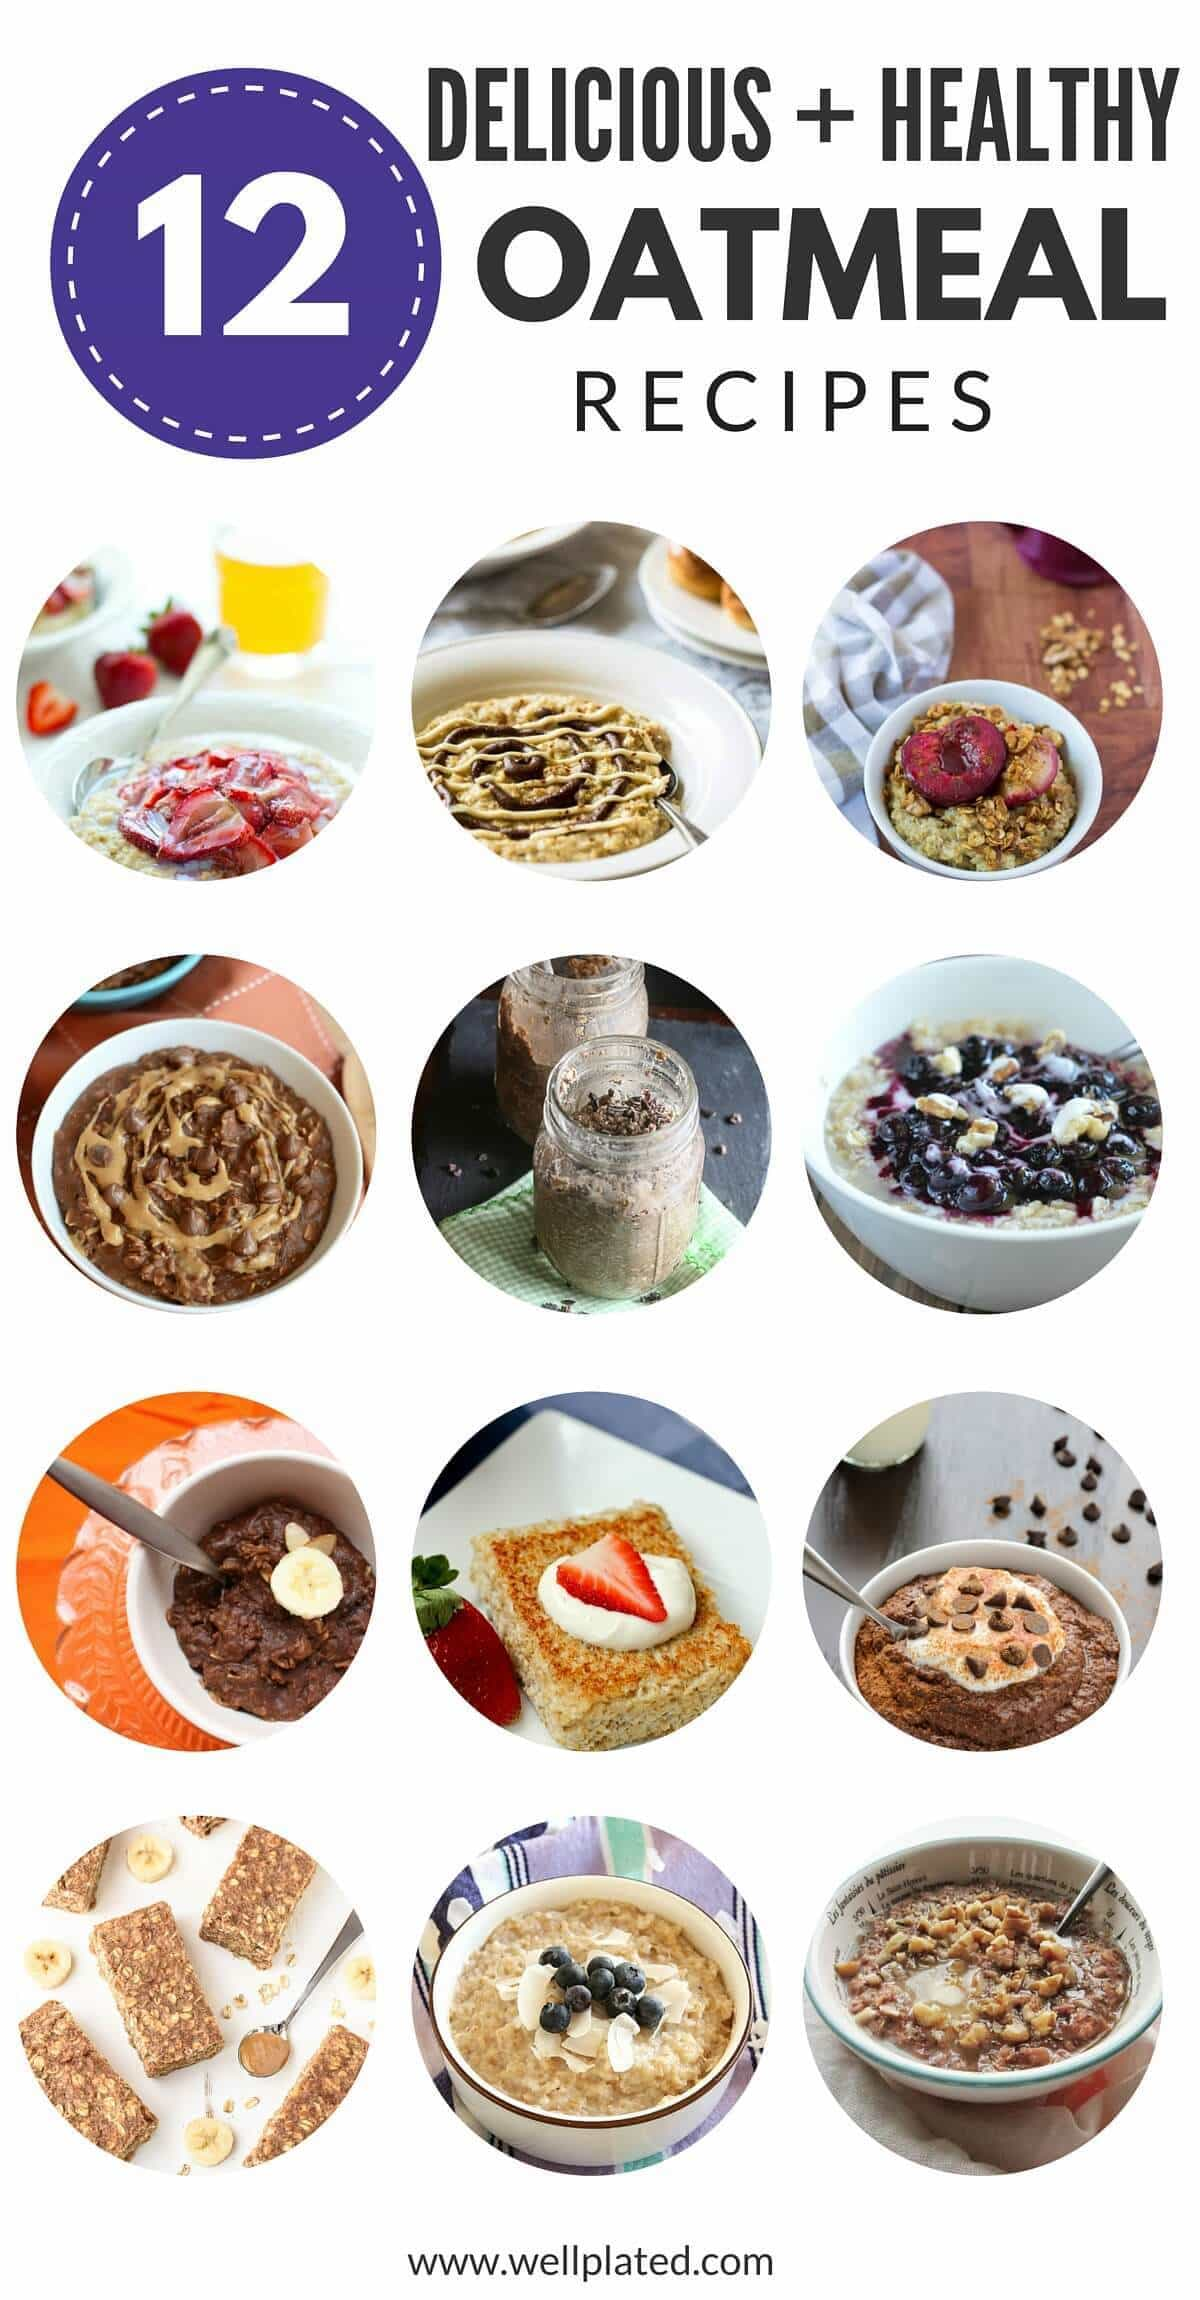 Oatmeal doesn't have to be boring! These 12 delicious and healthy oatmeal recipes offer so many flavor variations and will have you craving oatmeal every morning.